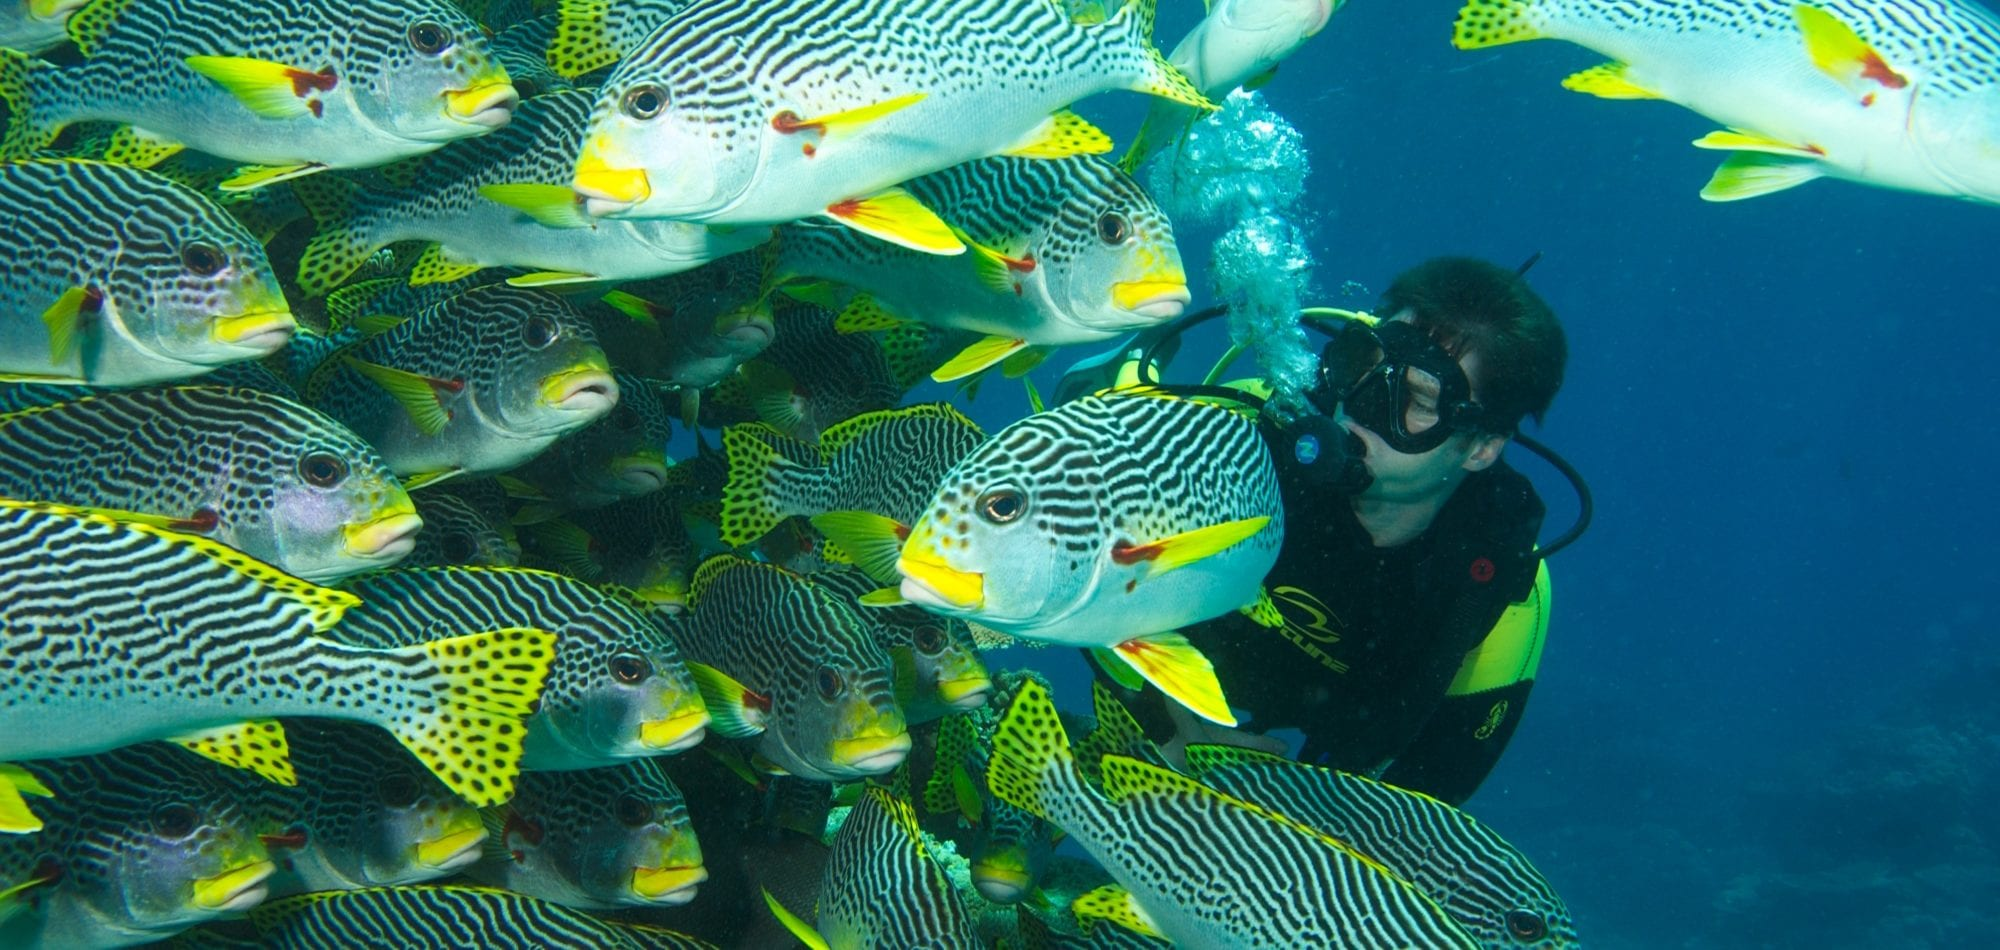 Diving the Great Barrier Reef - scuba diver from Spirit of Freedom with Sweetlip fish